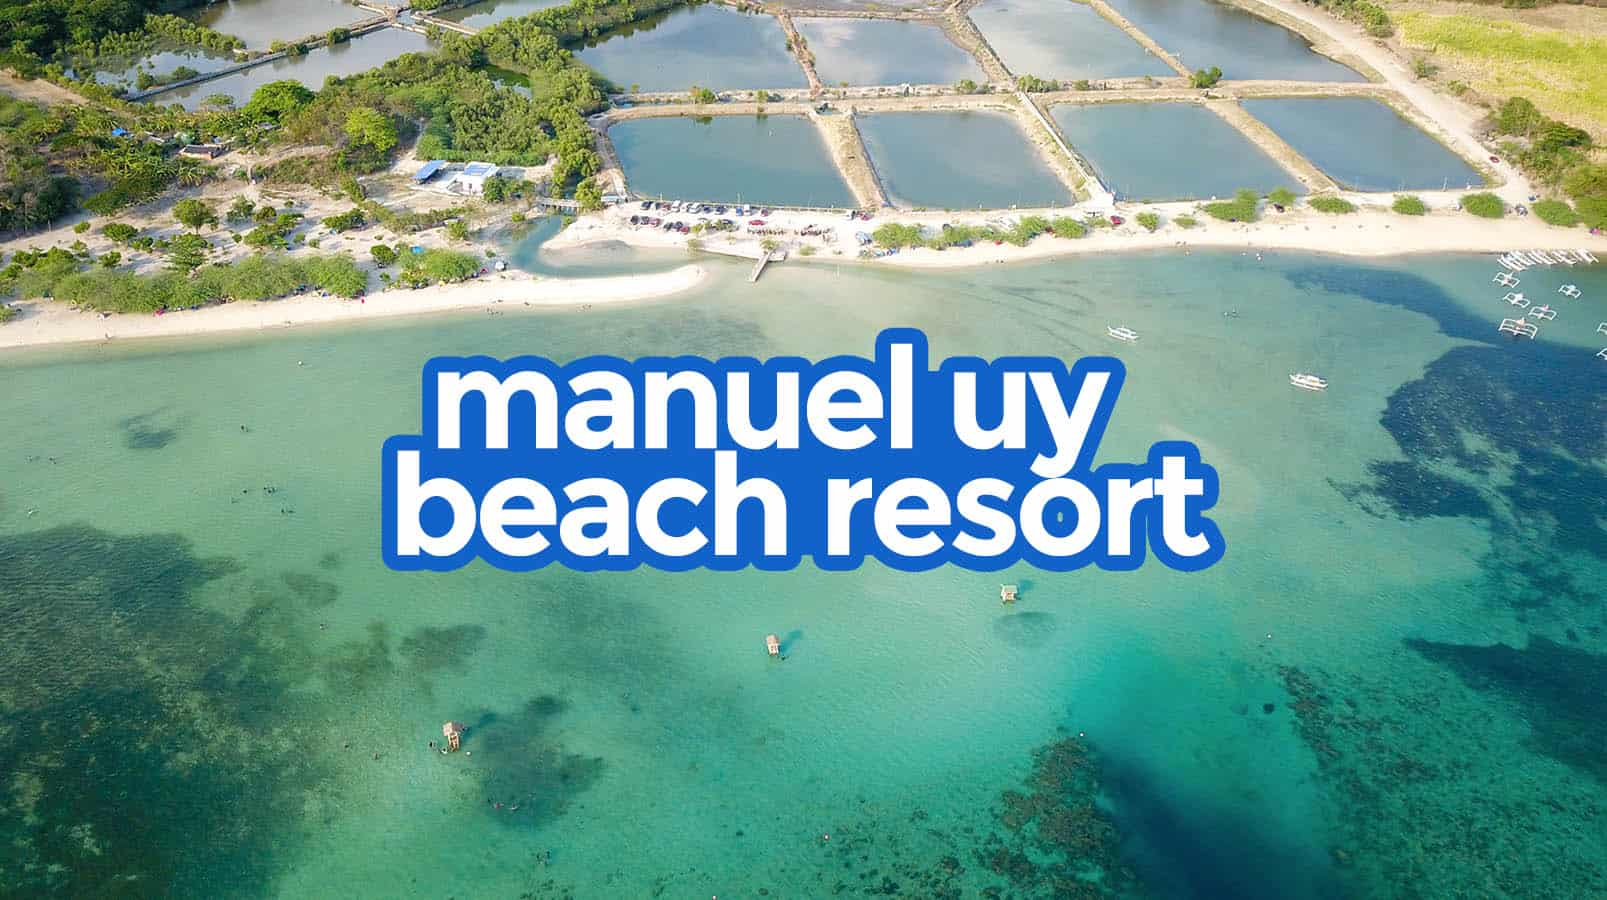 2019 MANUEL UY BEACH RESORT, CALATAGAN: Travel Guide & Budget Itineraries